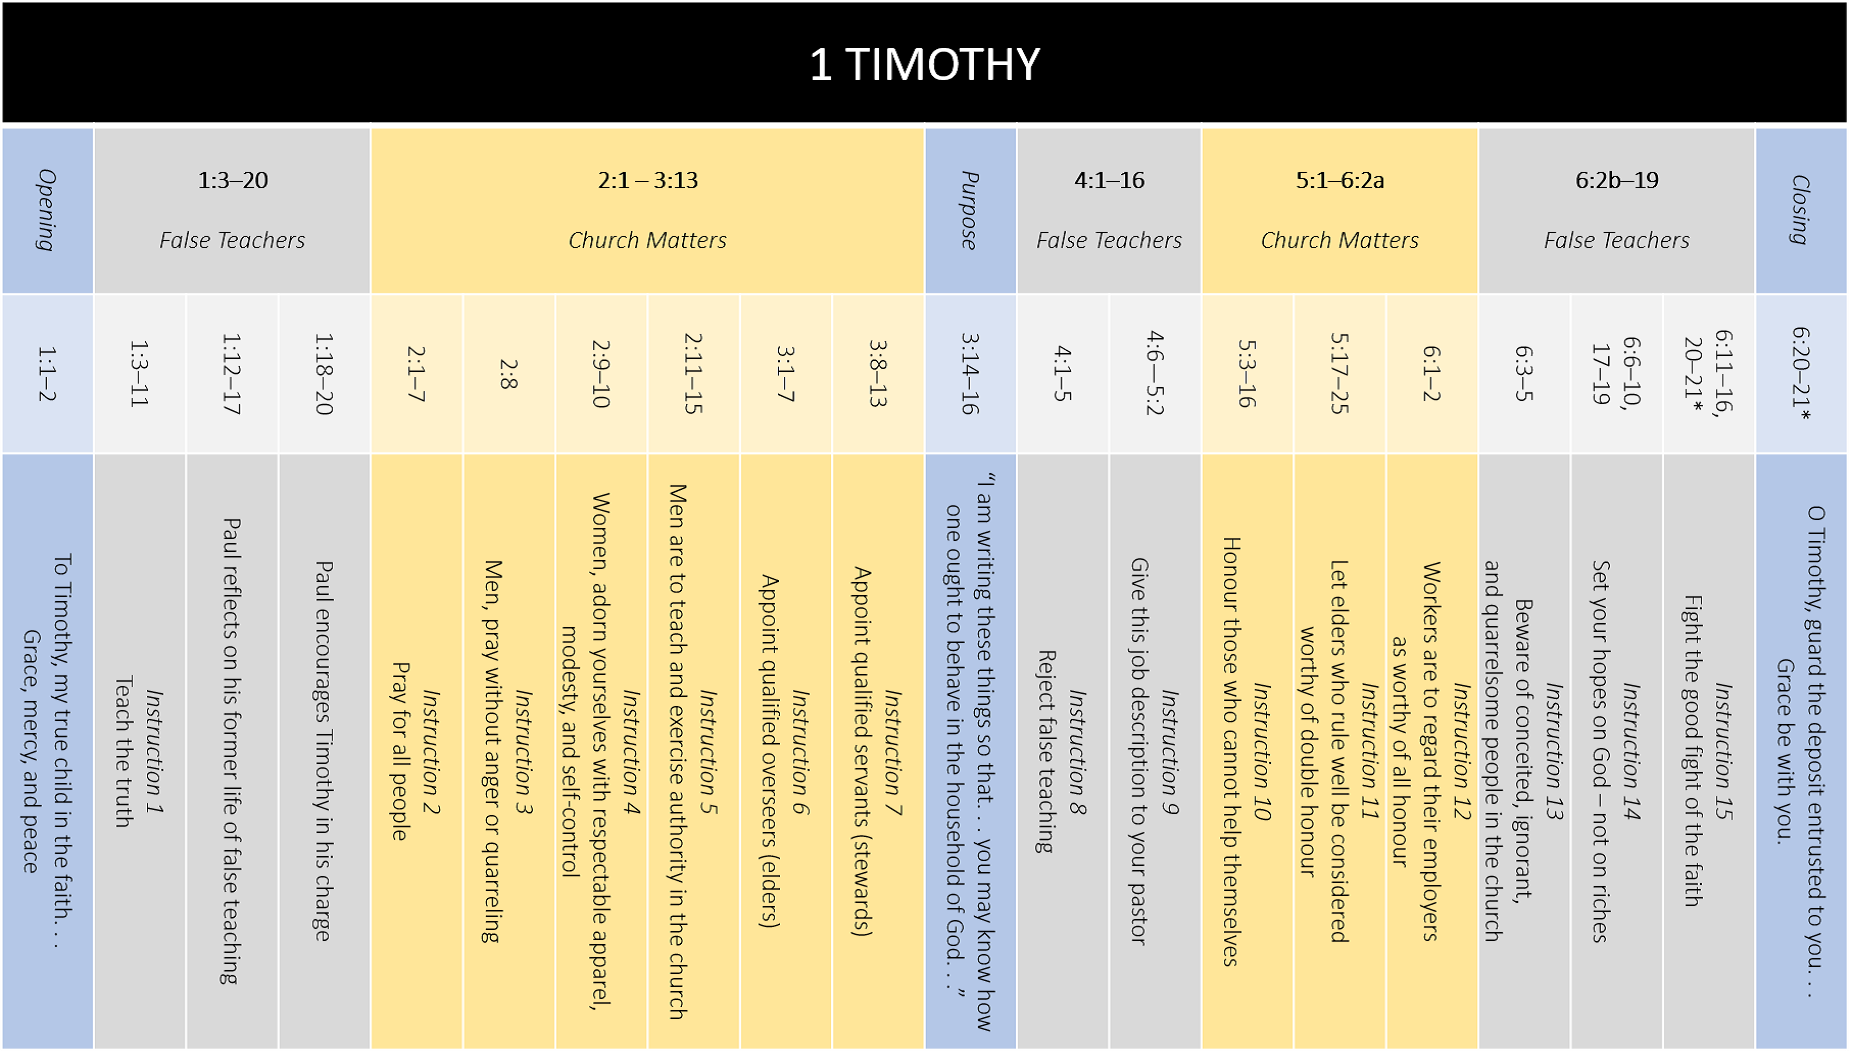 1 Timothy Overview Chart 1852 x 1052 (Revised)